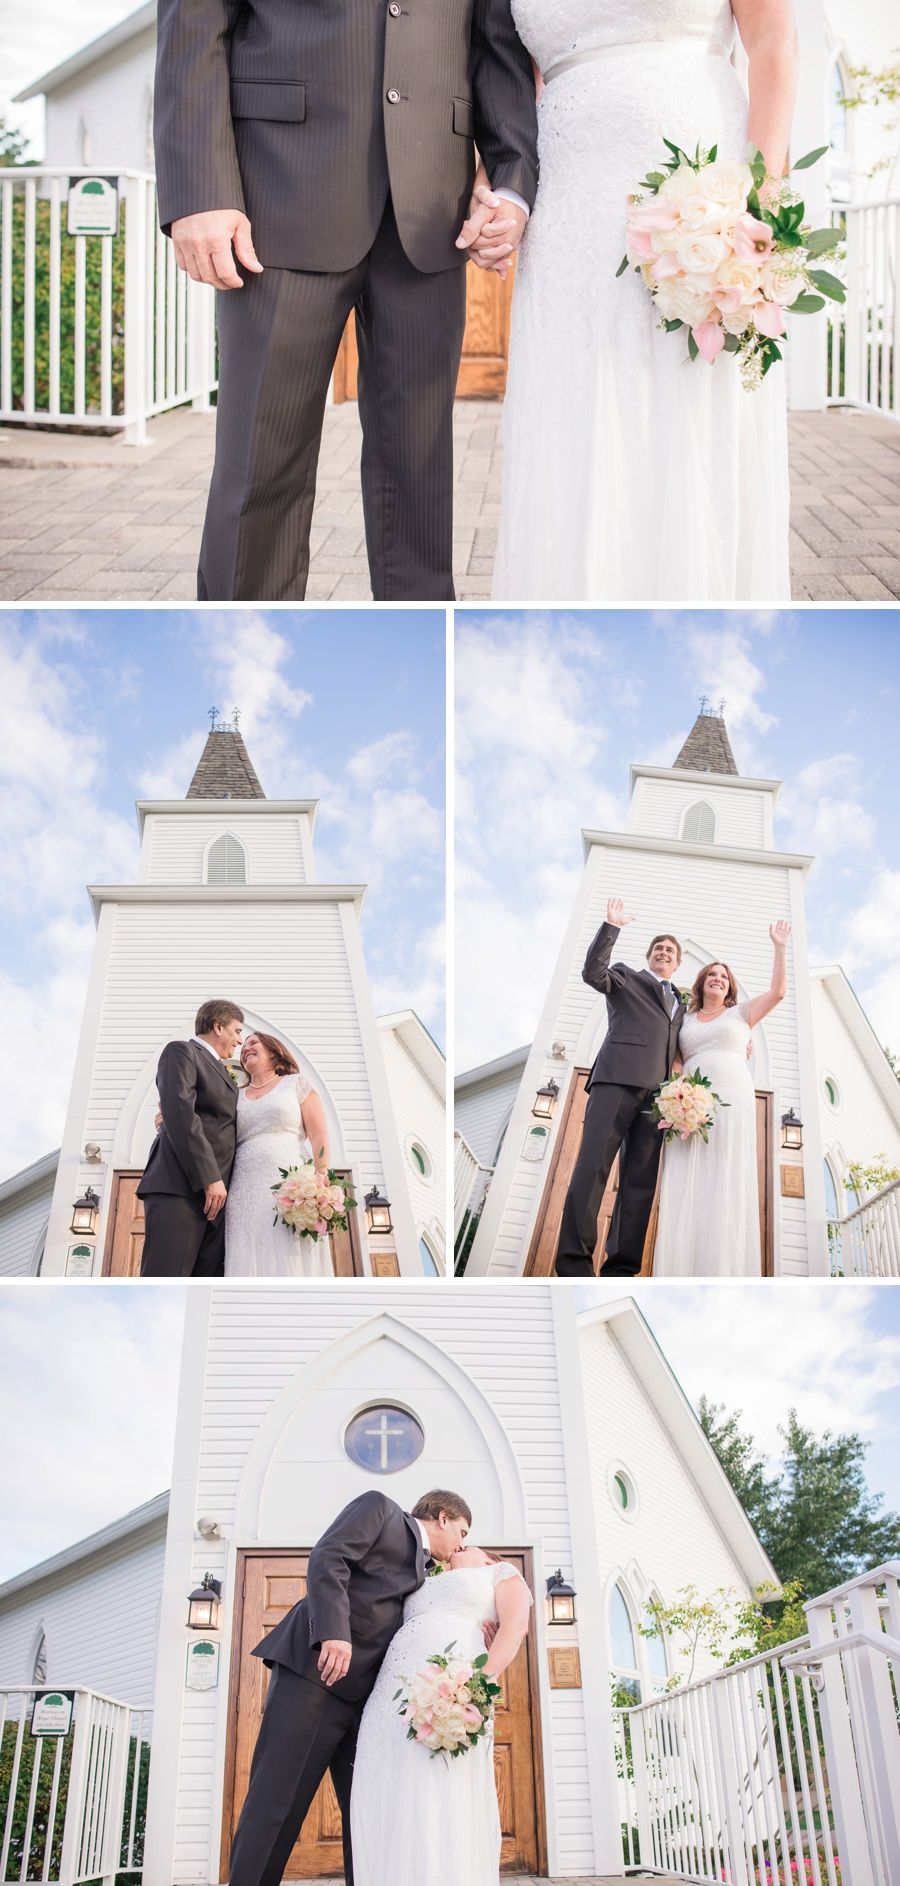 Second Wedding Mature Bride Small Ceremony Little White Church Blacksheepchic